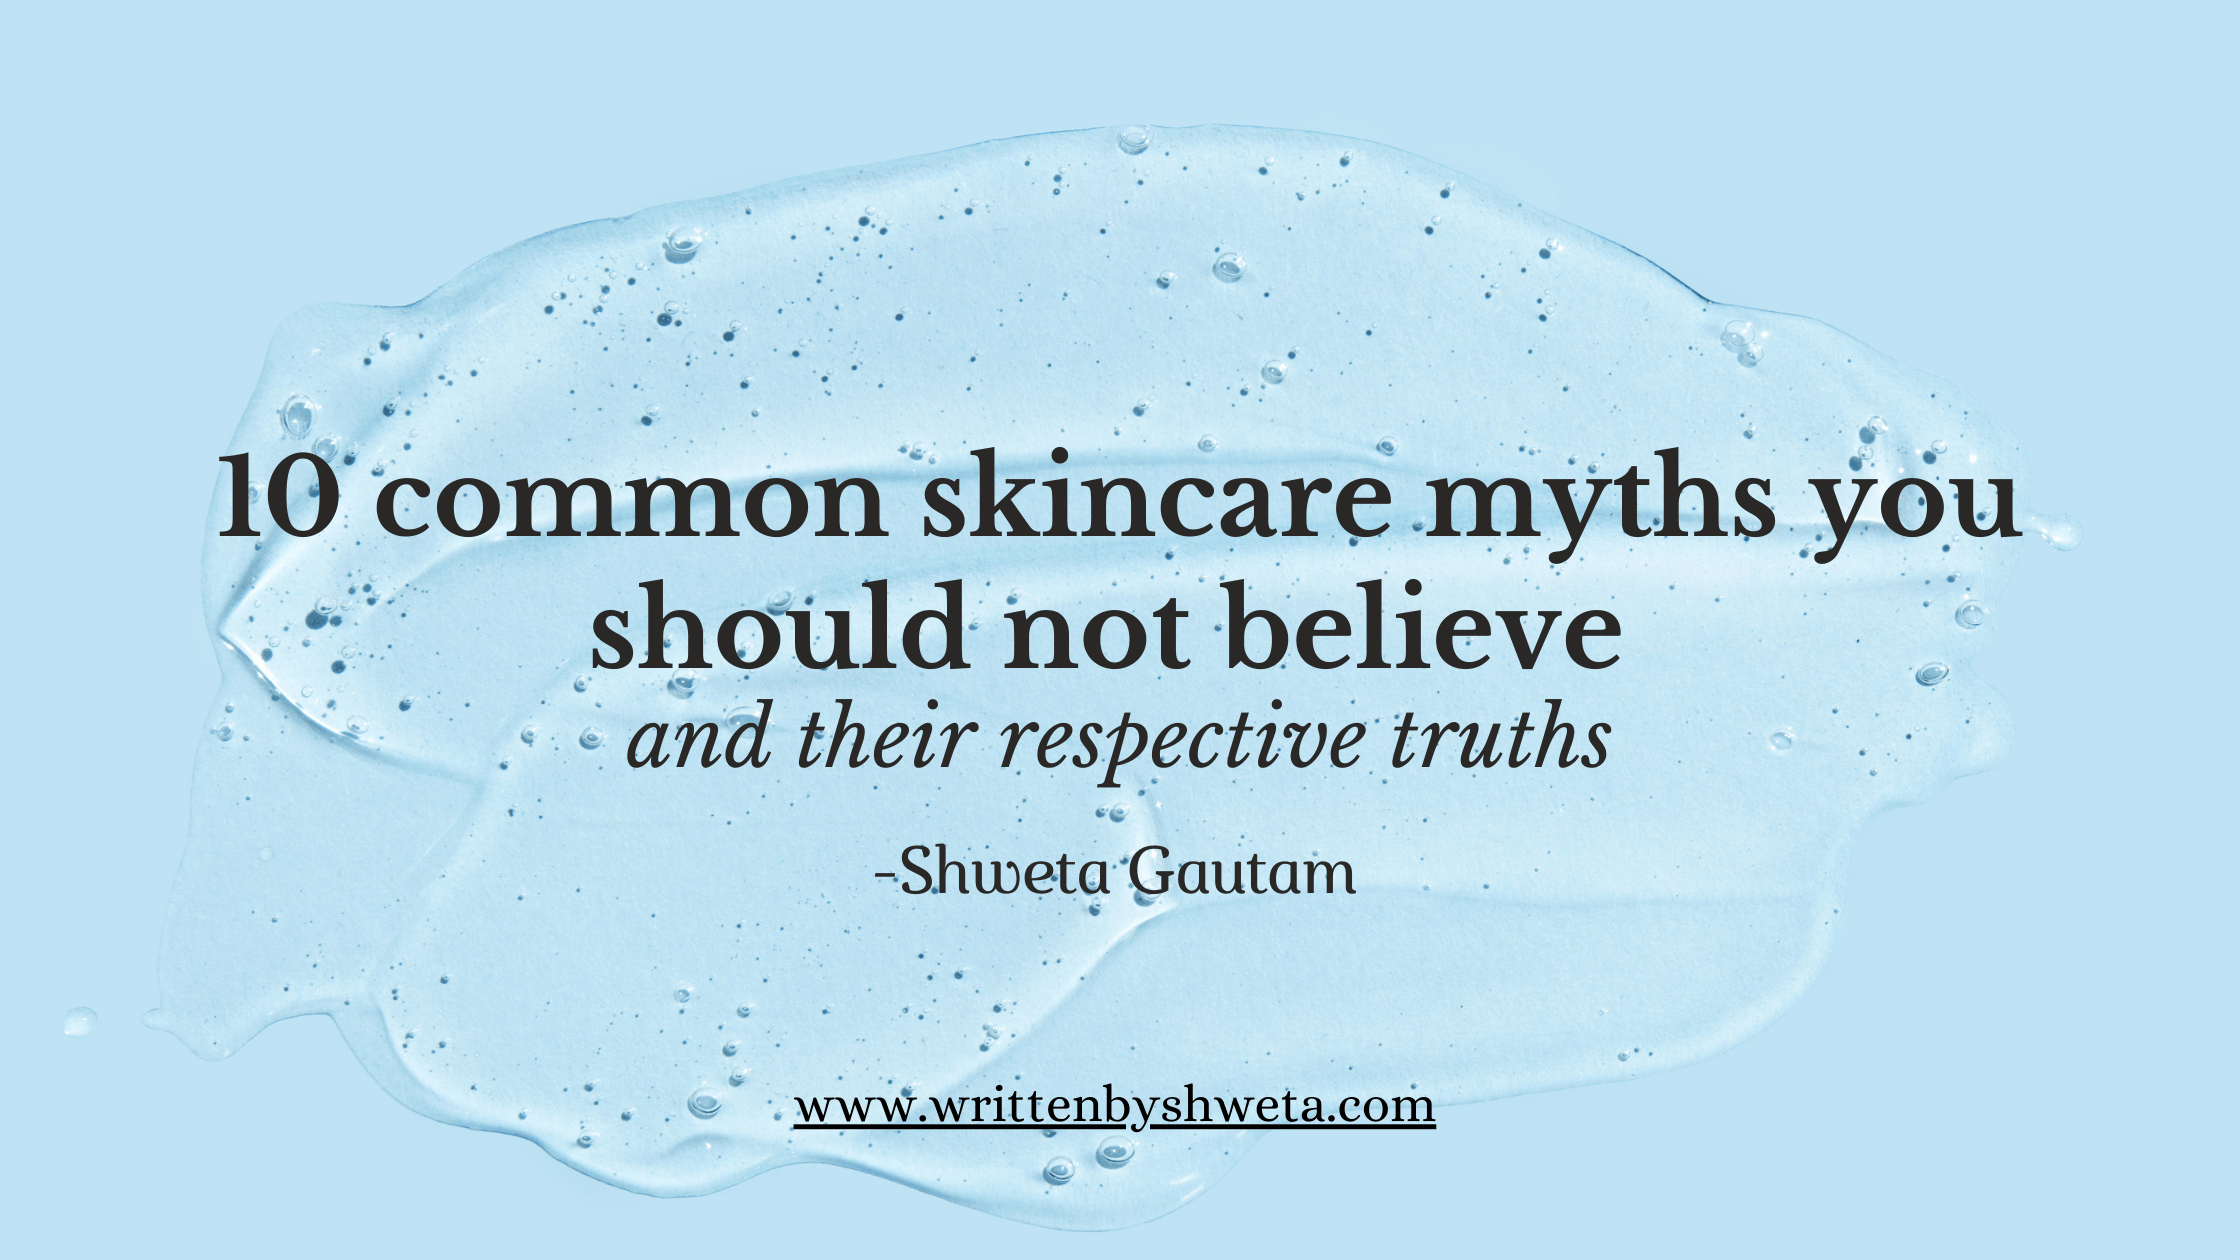 10 COMMON SKINCARE MYTHS YOU SHOULD NOT IGNORE AND THEIR RESPECTIVE TRUTHS